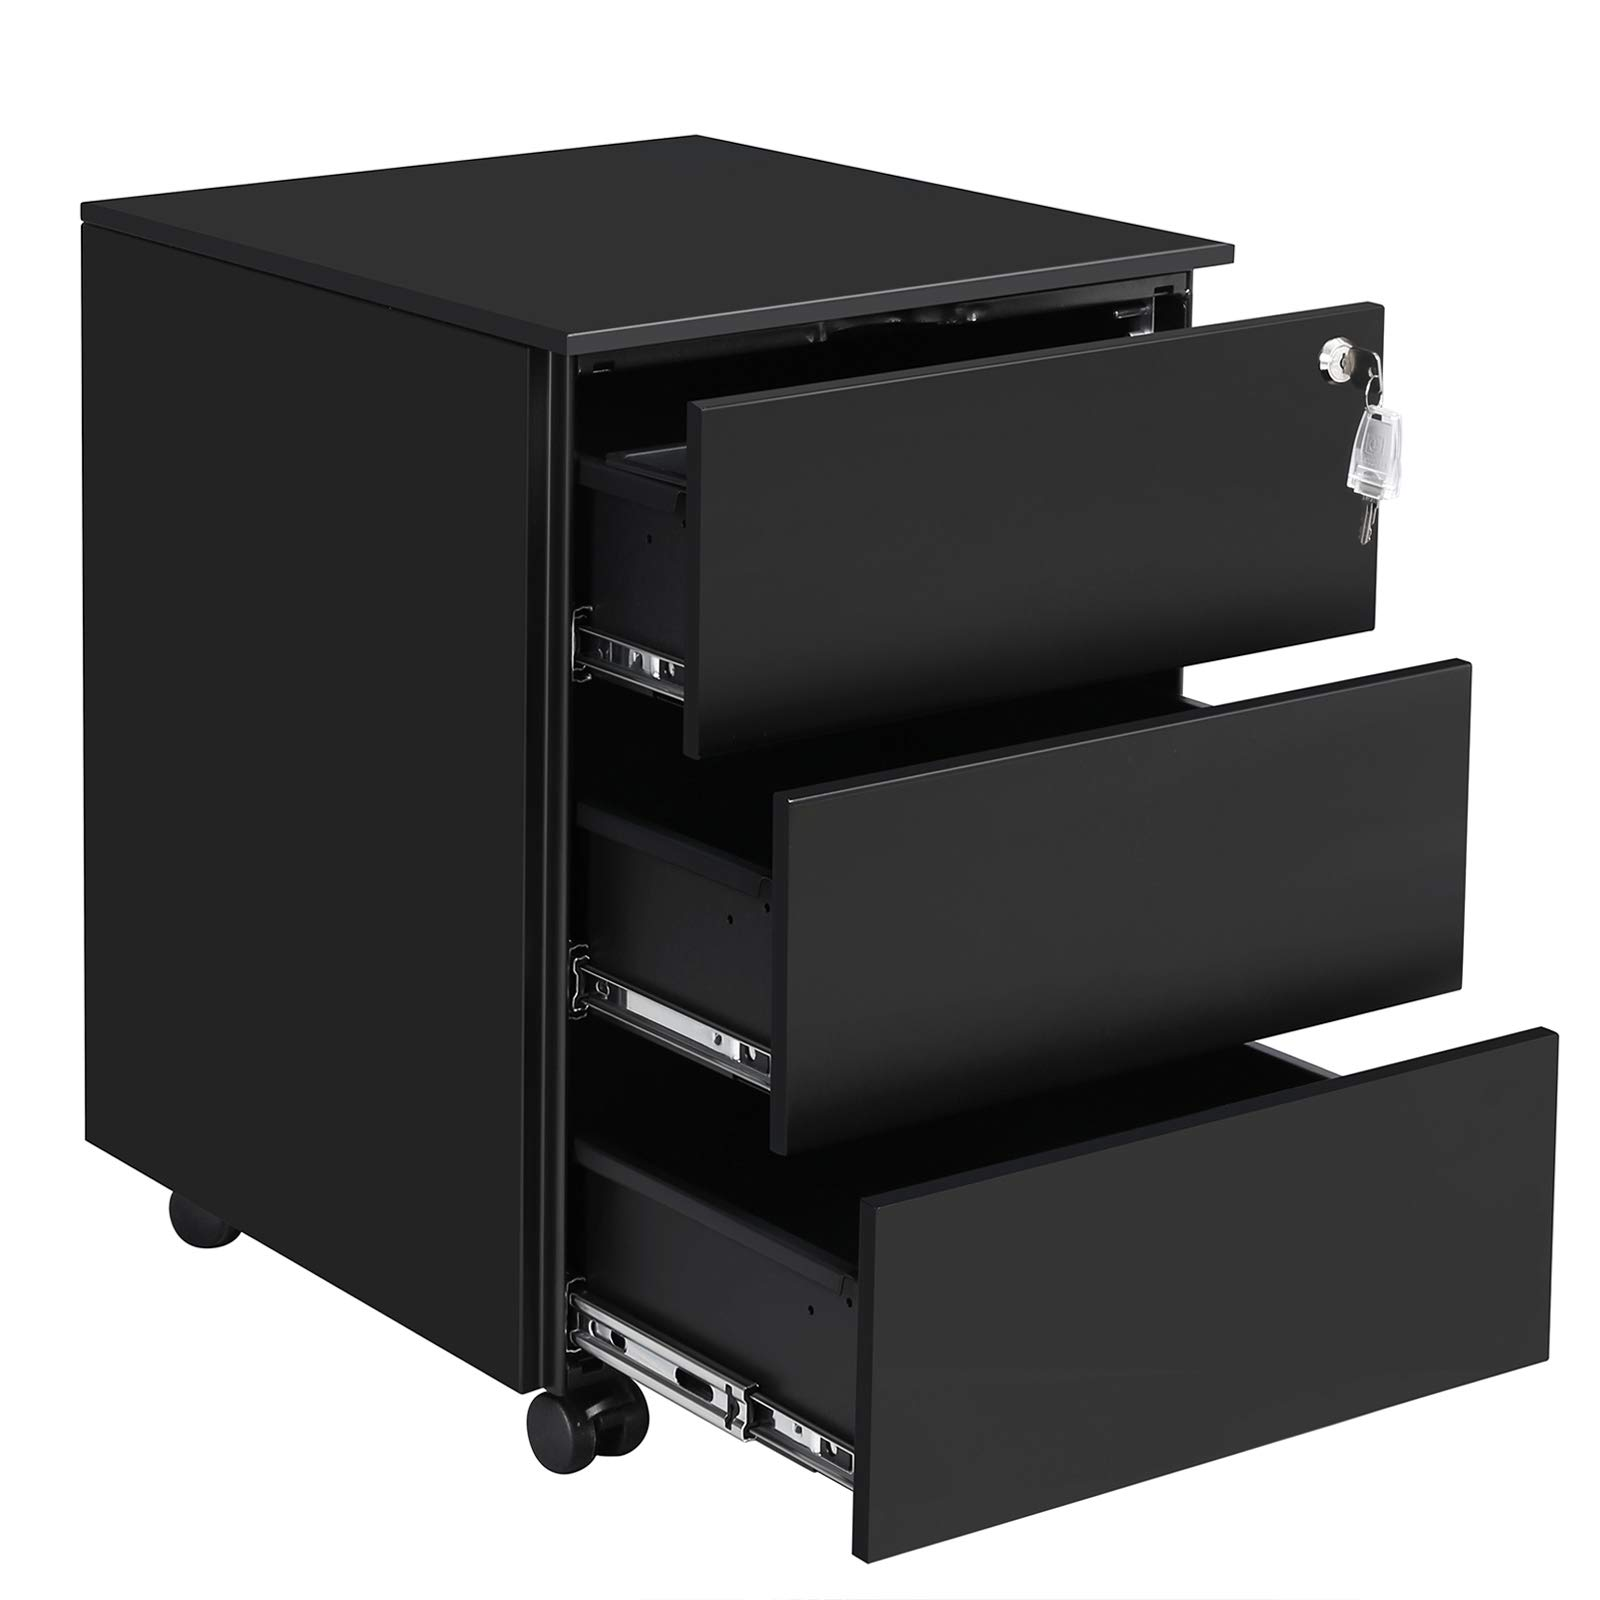 SONGMICS Mobile File Cabinet, Lockable, Pre-Assembled, with 3 Drawers, Hold Documents, Stationery, 15.4 x 17.7 x 21.7 Inches, Matte Black UOFC63BK by SONGMICS